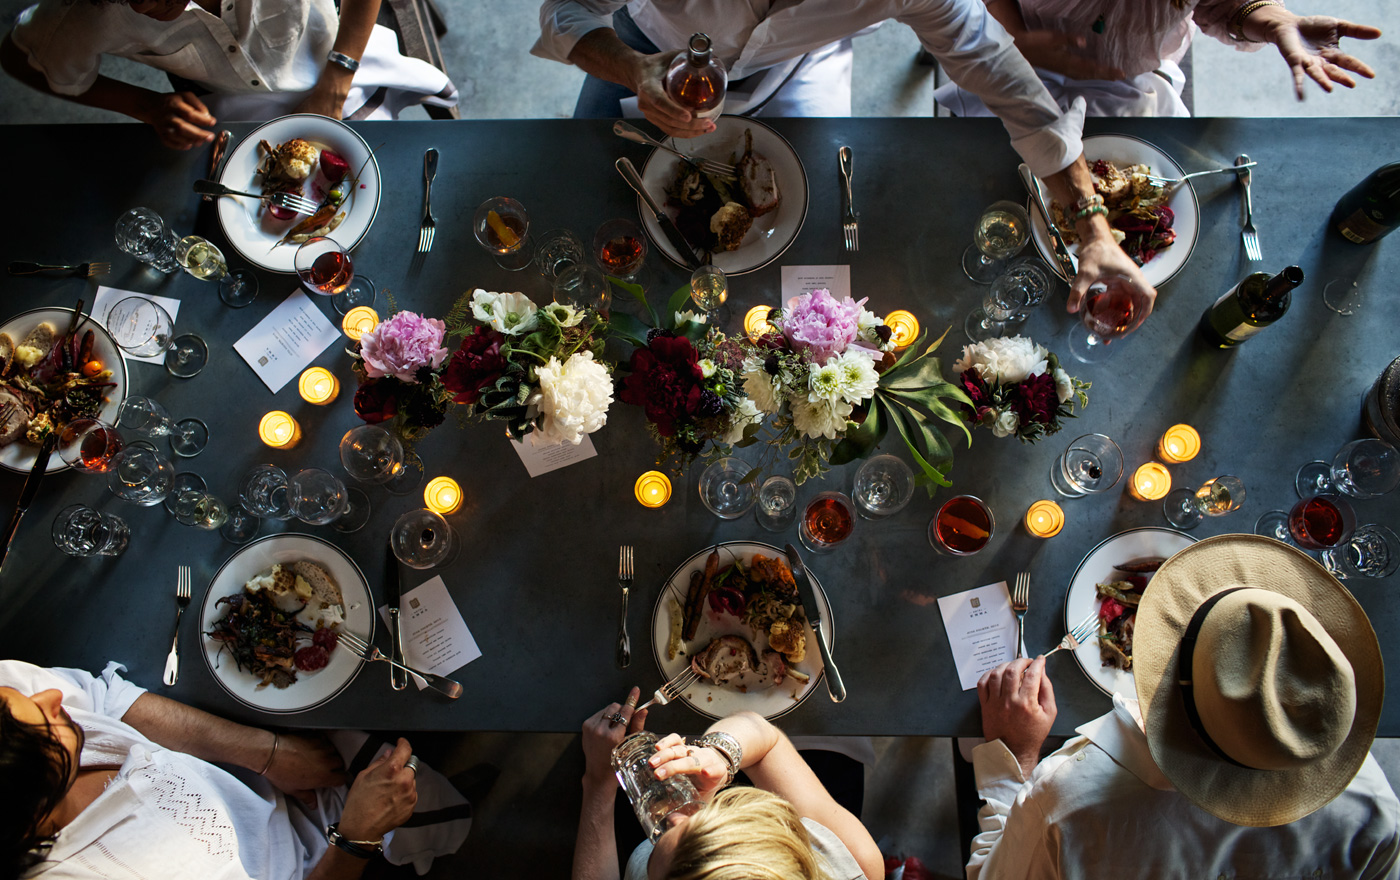 Picture of six people eating a private meal.